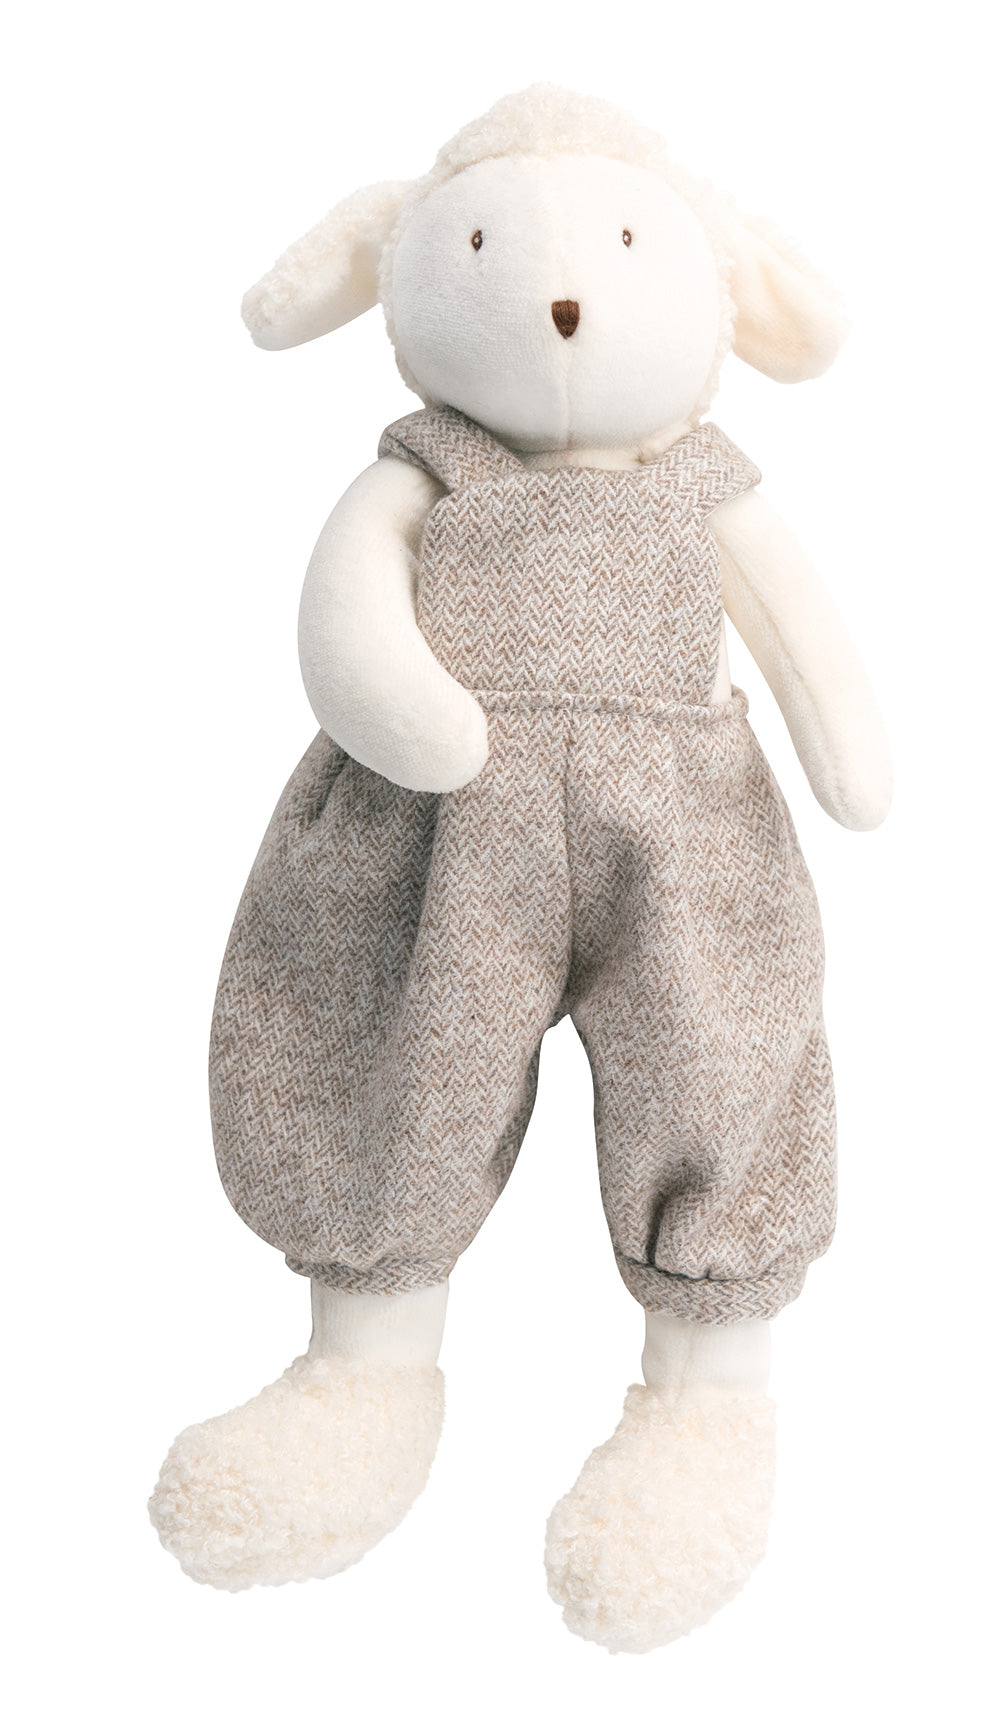 Soft and cuddly, Albert the French Sheep is the perfect gentle companion for your little one. Albert is elegantly dressed in baggy tweed dungarees and loves being cuddled or taken on big adventures!